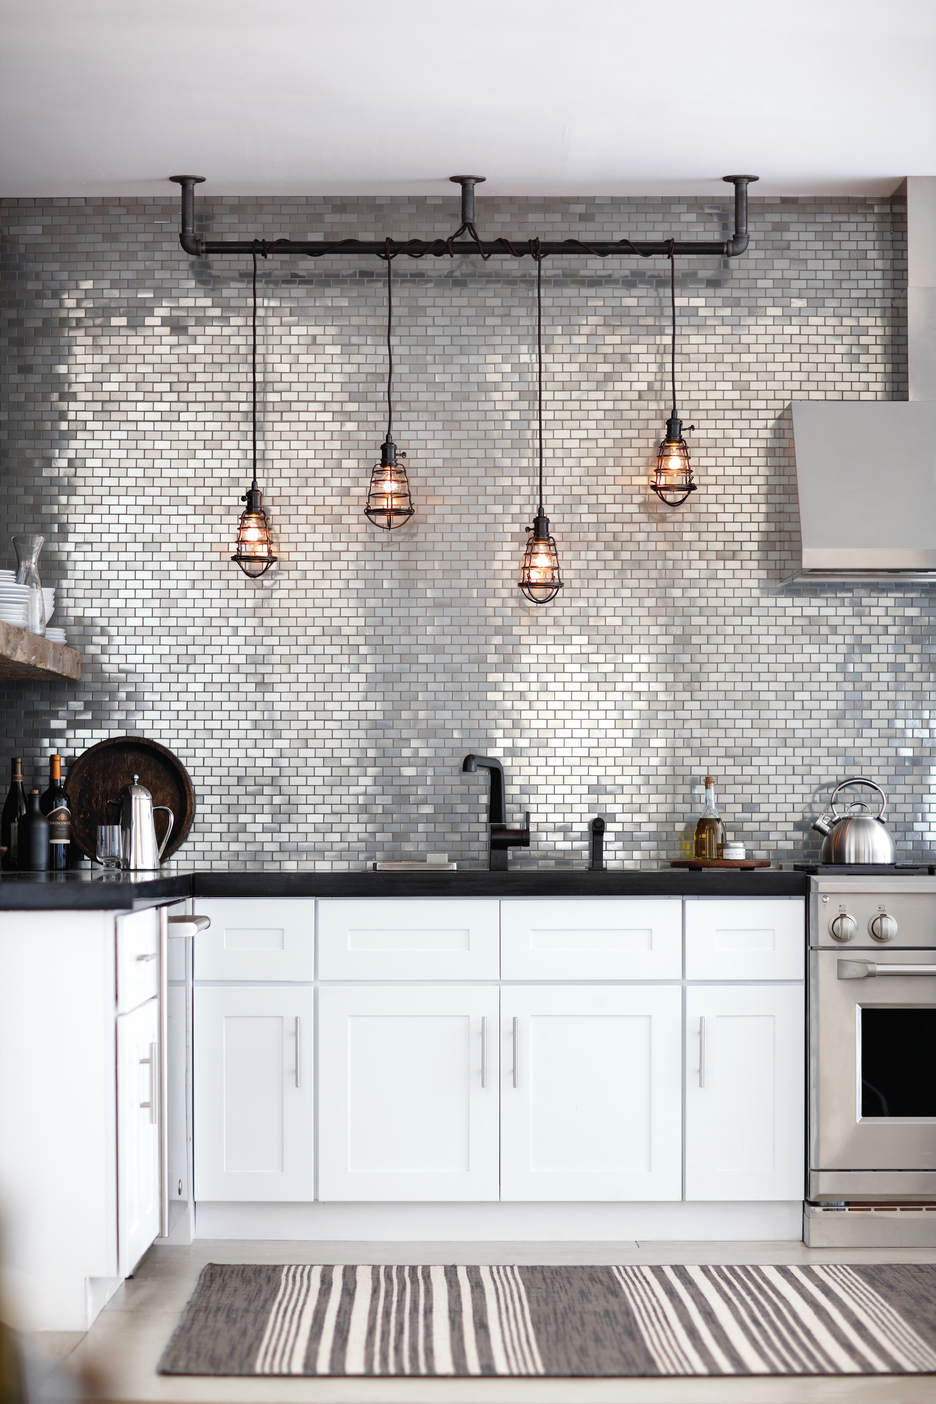 18 Unique Kitchen Backsplash Design Ideas - Style Motivation